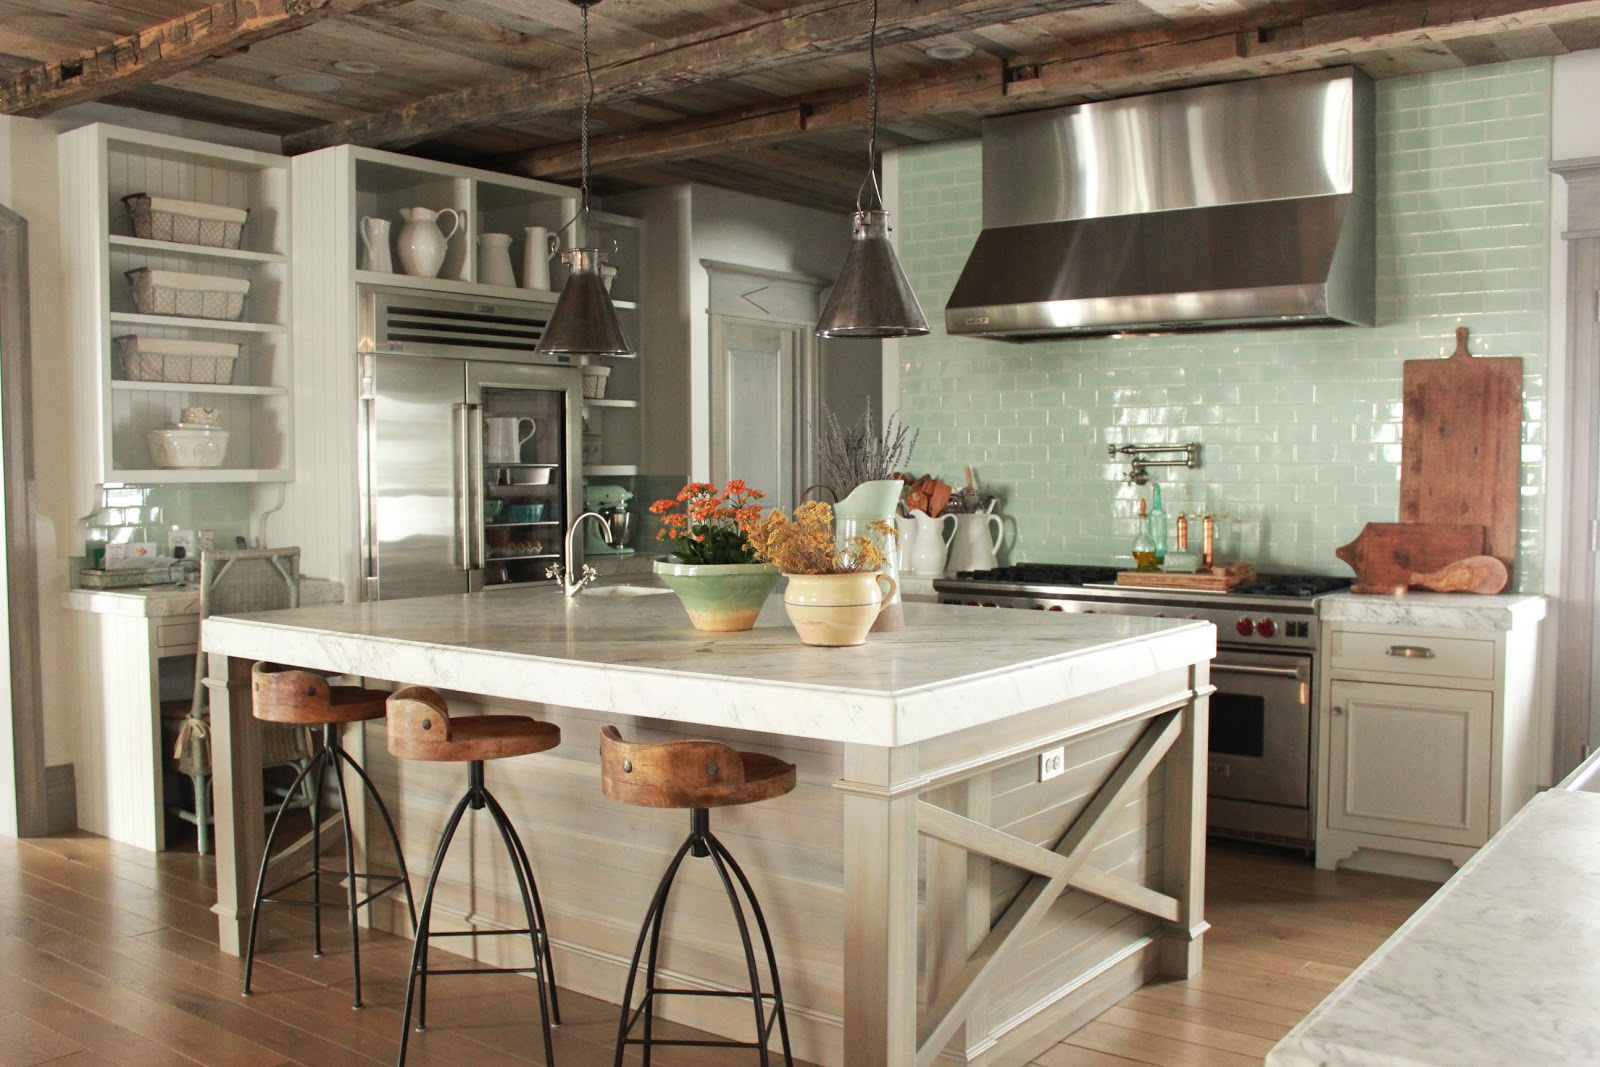 Magnificent Gustavian French kitchen in stone cottage with rustic interiors, reclaimed wood ceilings, blue-grey, green, and collected European antiques. Designed by Desiree Ashworth. Find ideas for grey, blue, and green paint colors.